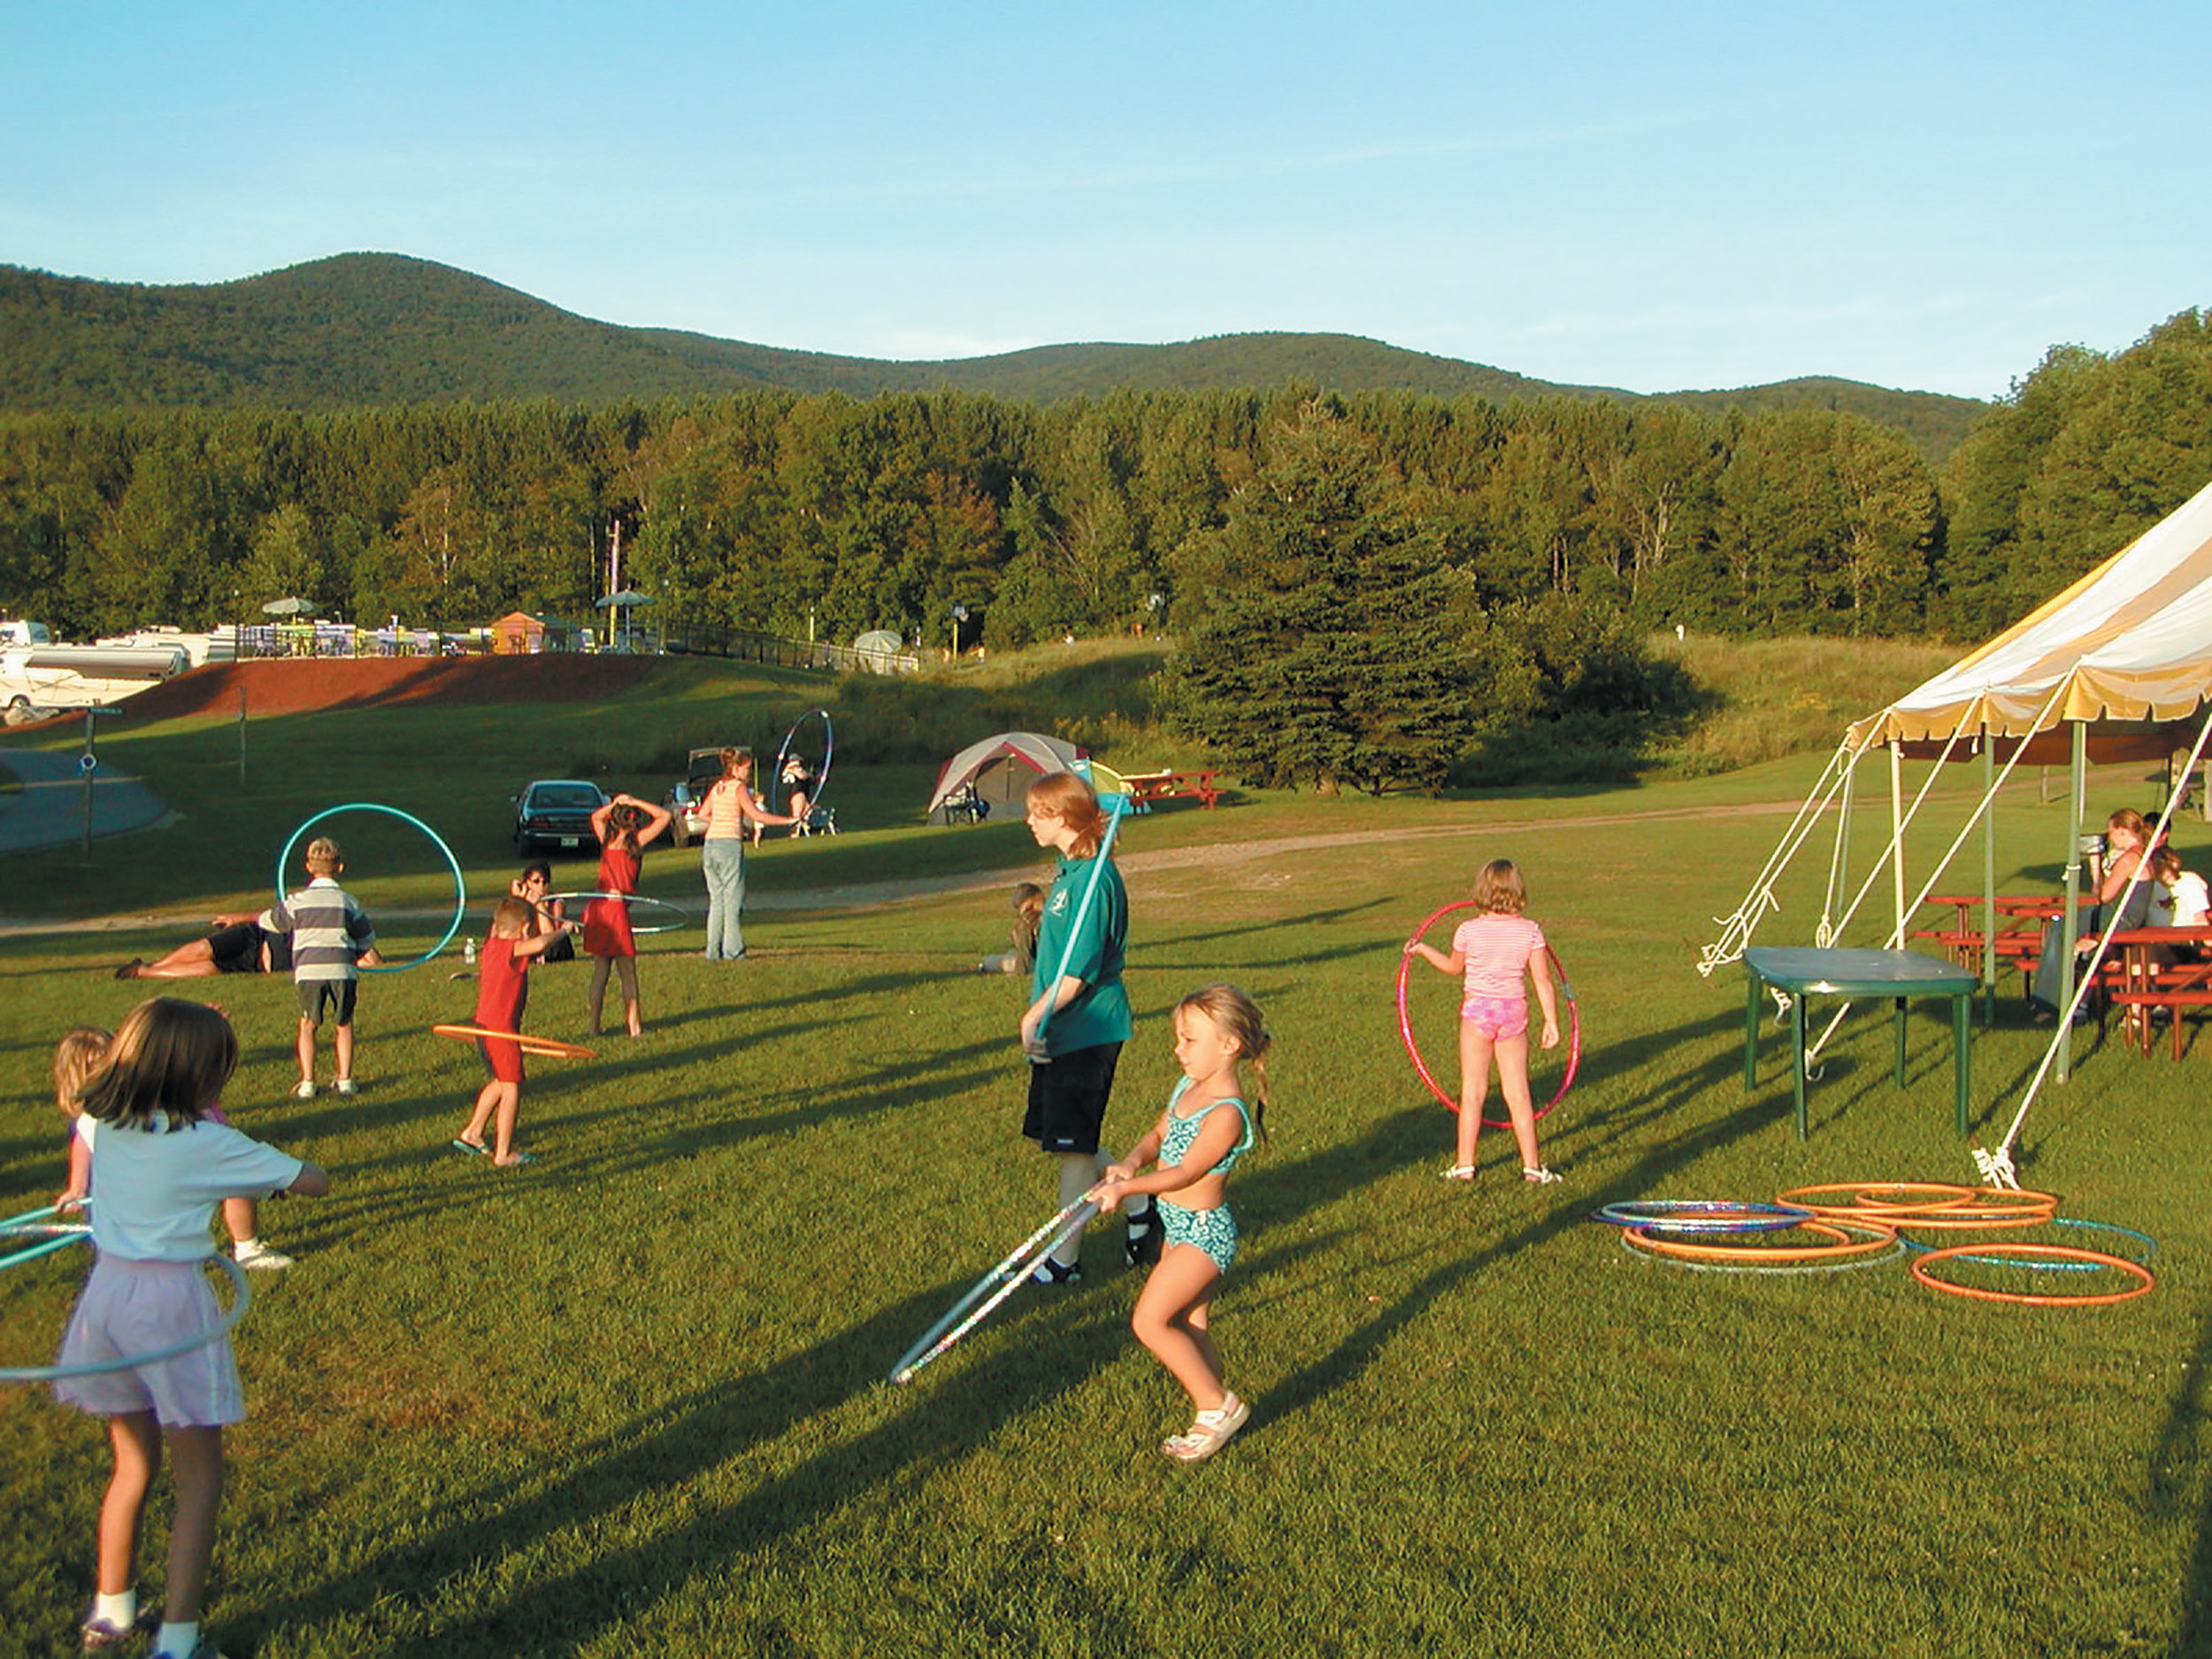 Hoola Hoopers - The Lantern Resort Campground & Motel - Jefferson, NH